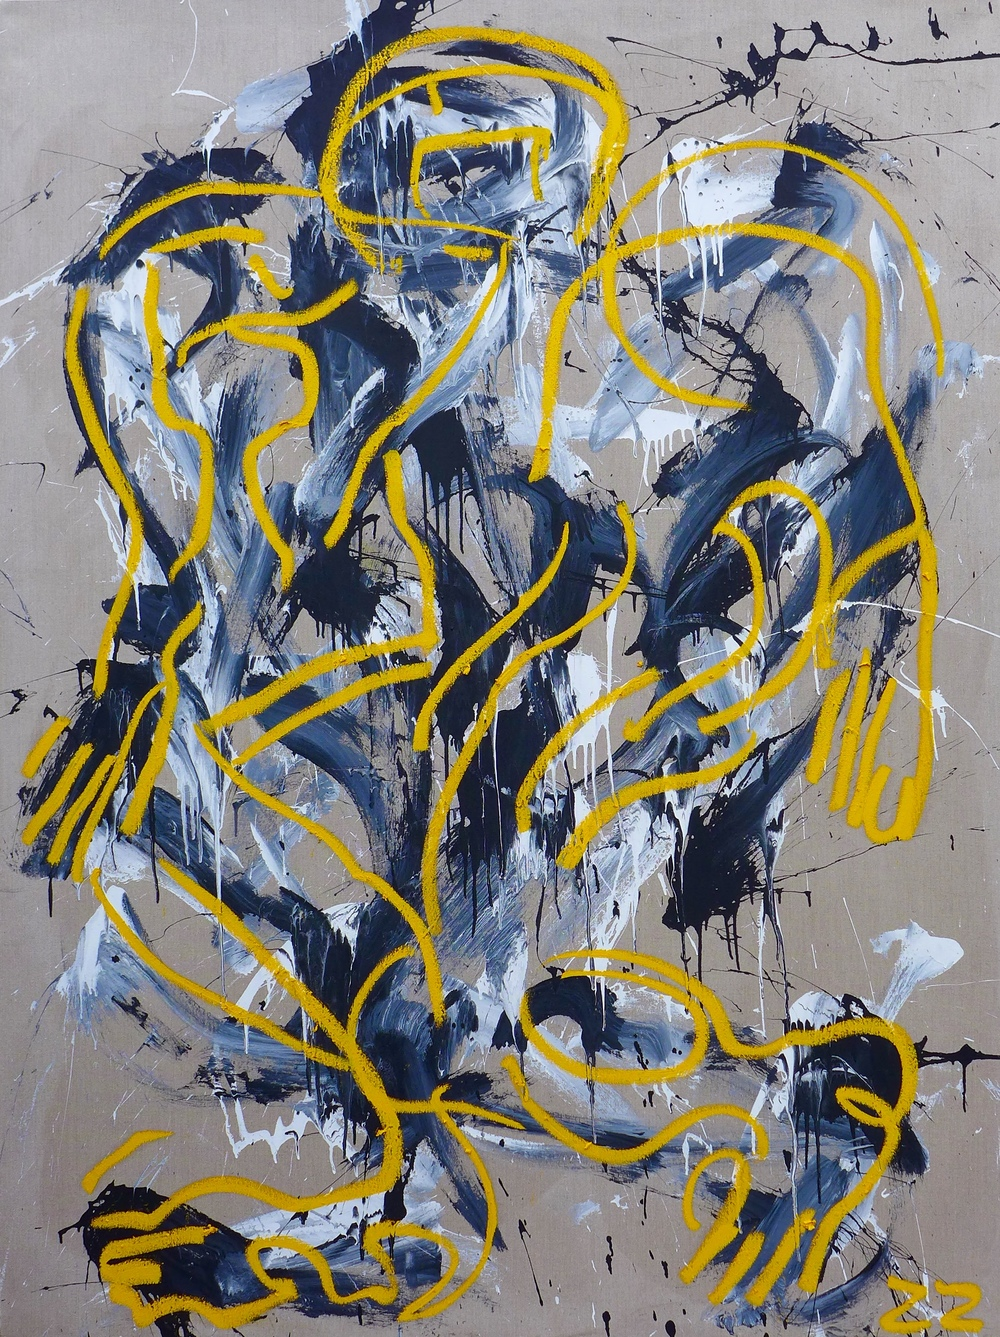 Zio Ziegler MOTION 2 72 x 96 x 1.5 inches Oil and House Paint on Canvas SOLD